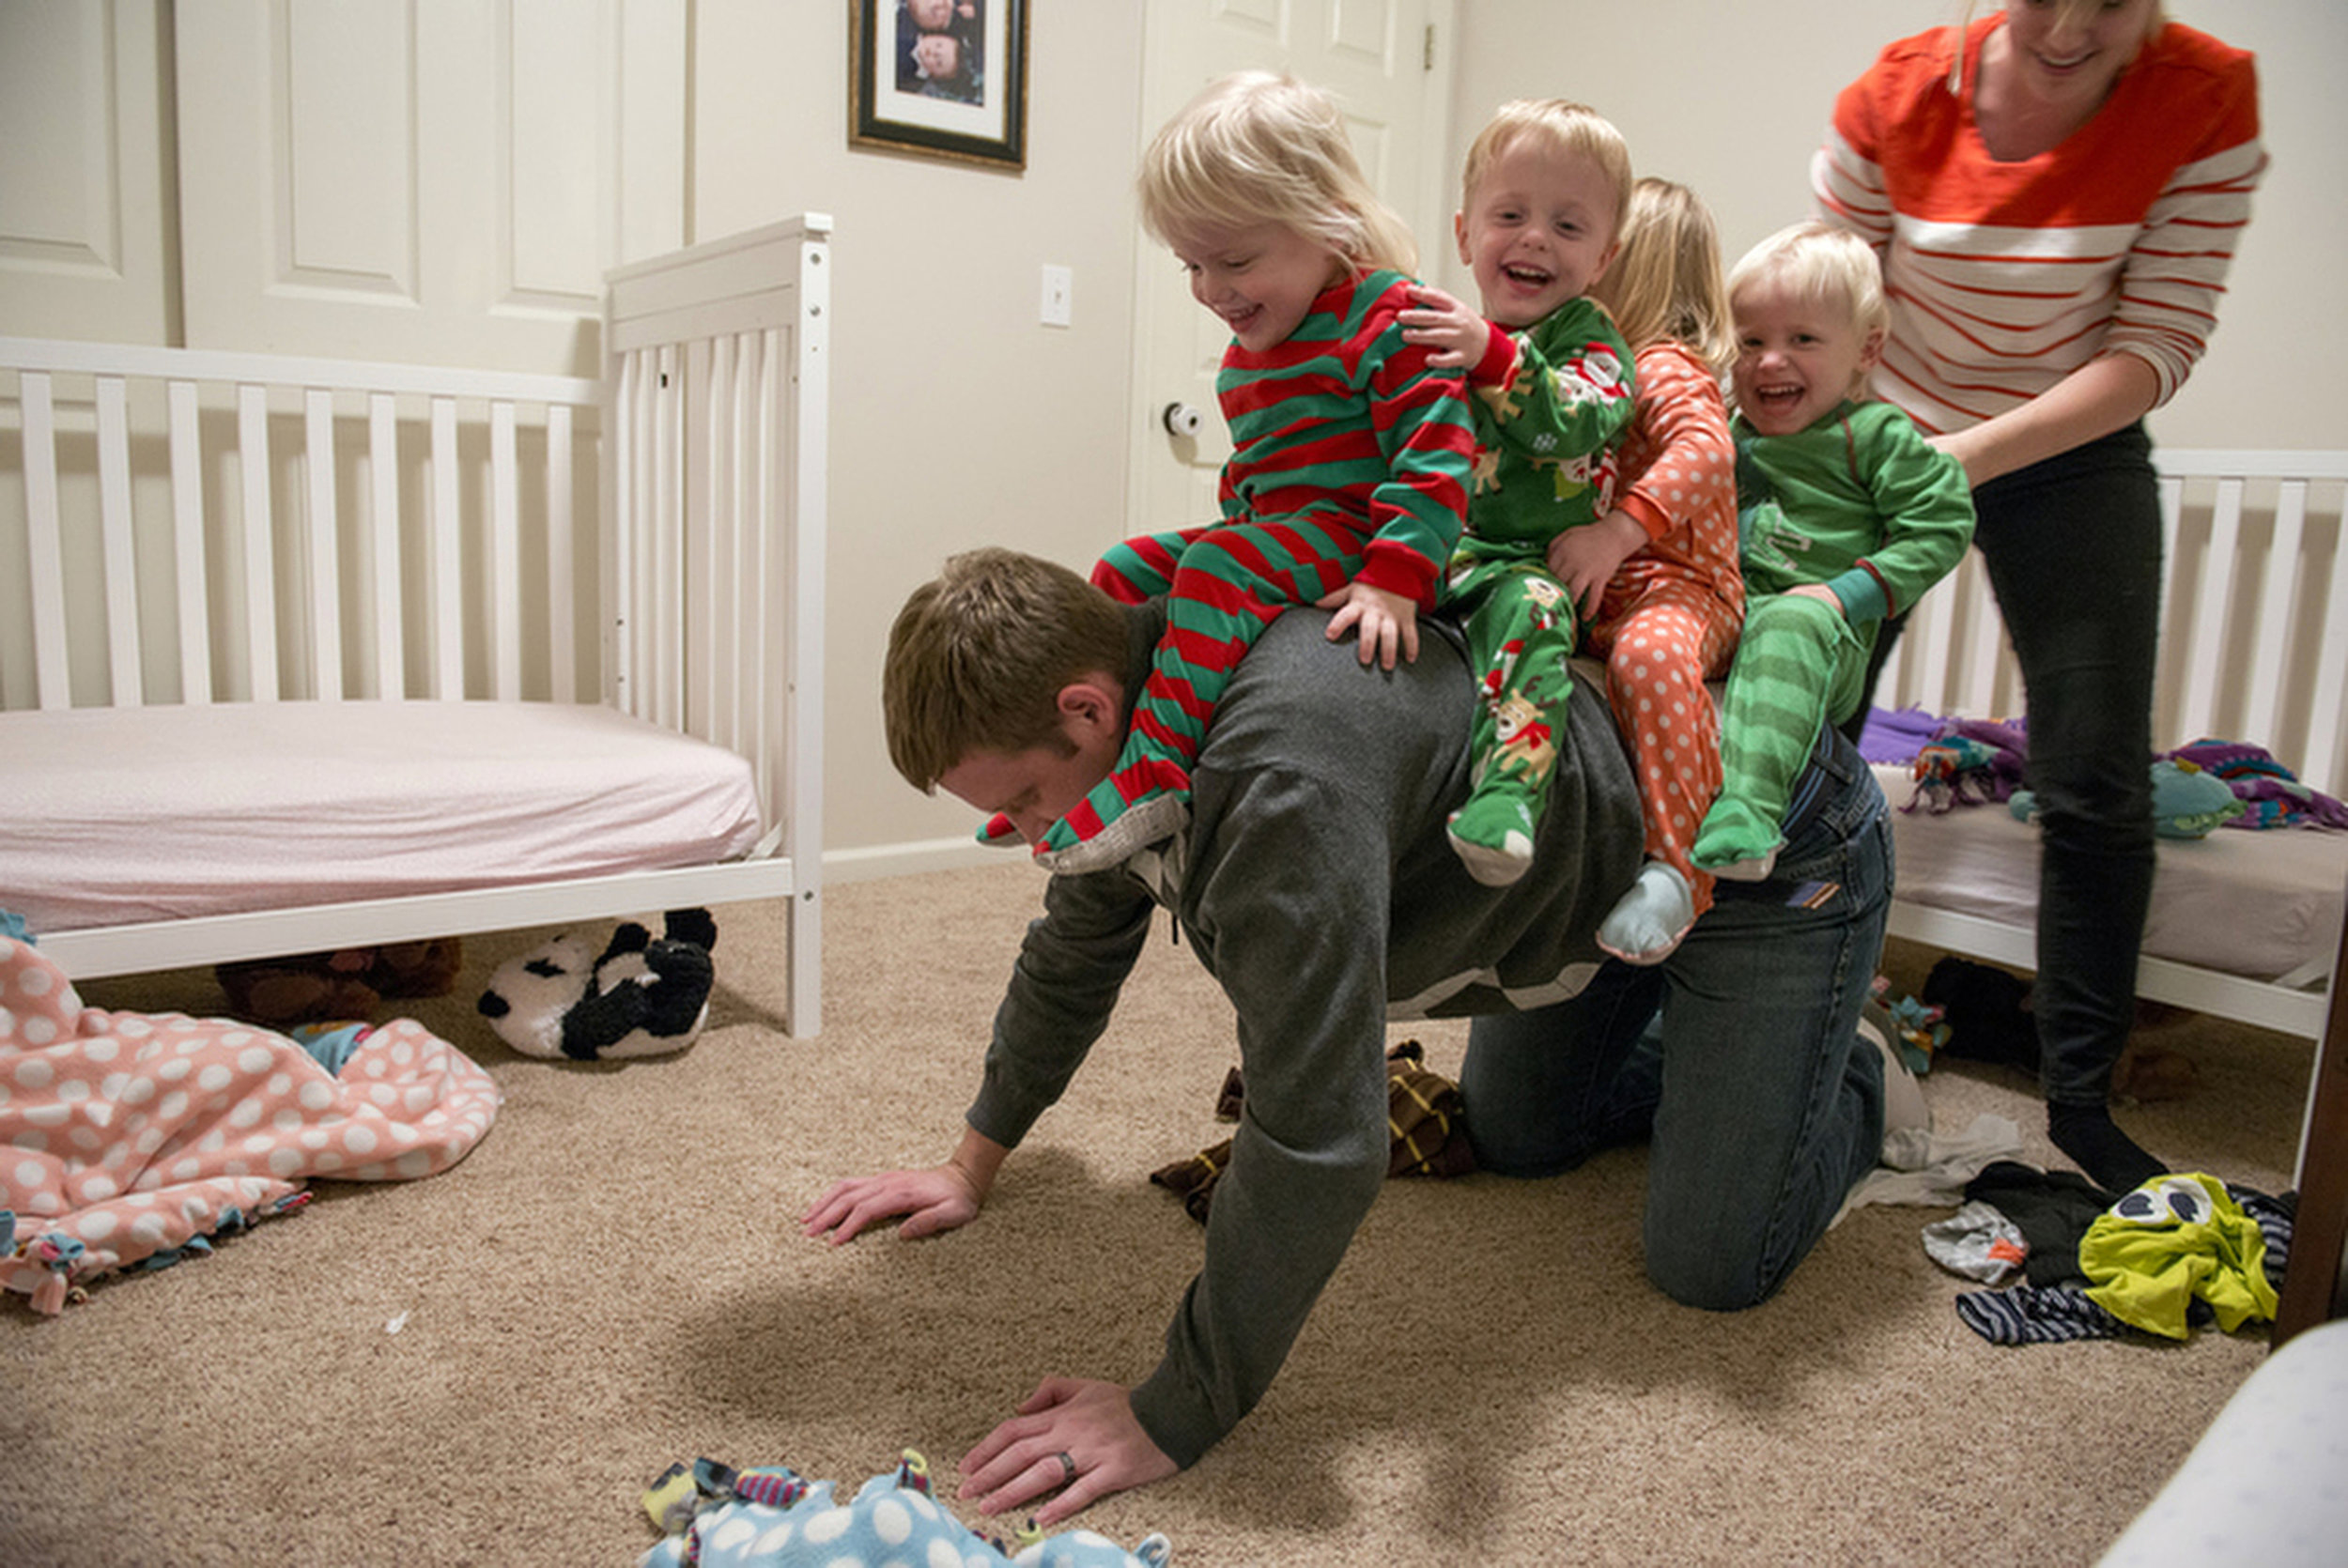 Cameron and Courtney play piggy back with their two-year old, quadruplets before bedtime on Nov. 21, 2014.Cameron loves to spend time with the kids once he is home from work since he doesn't get to see them all day.